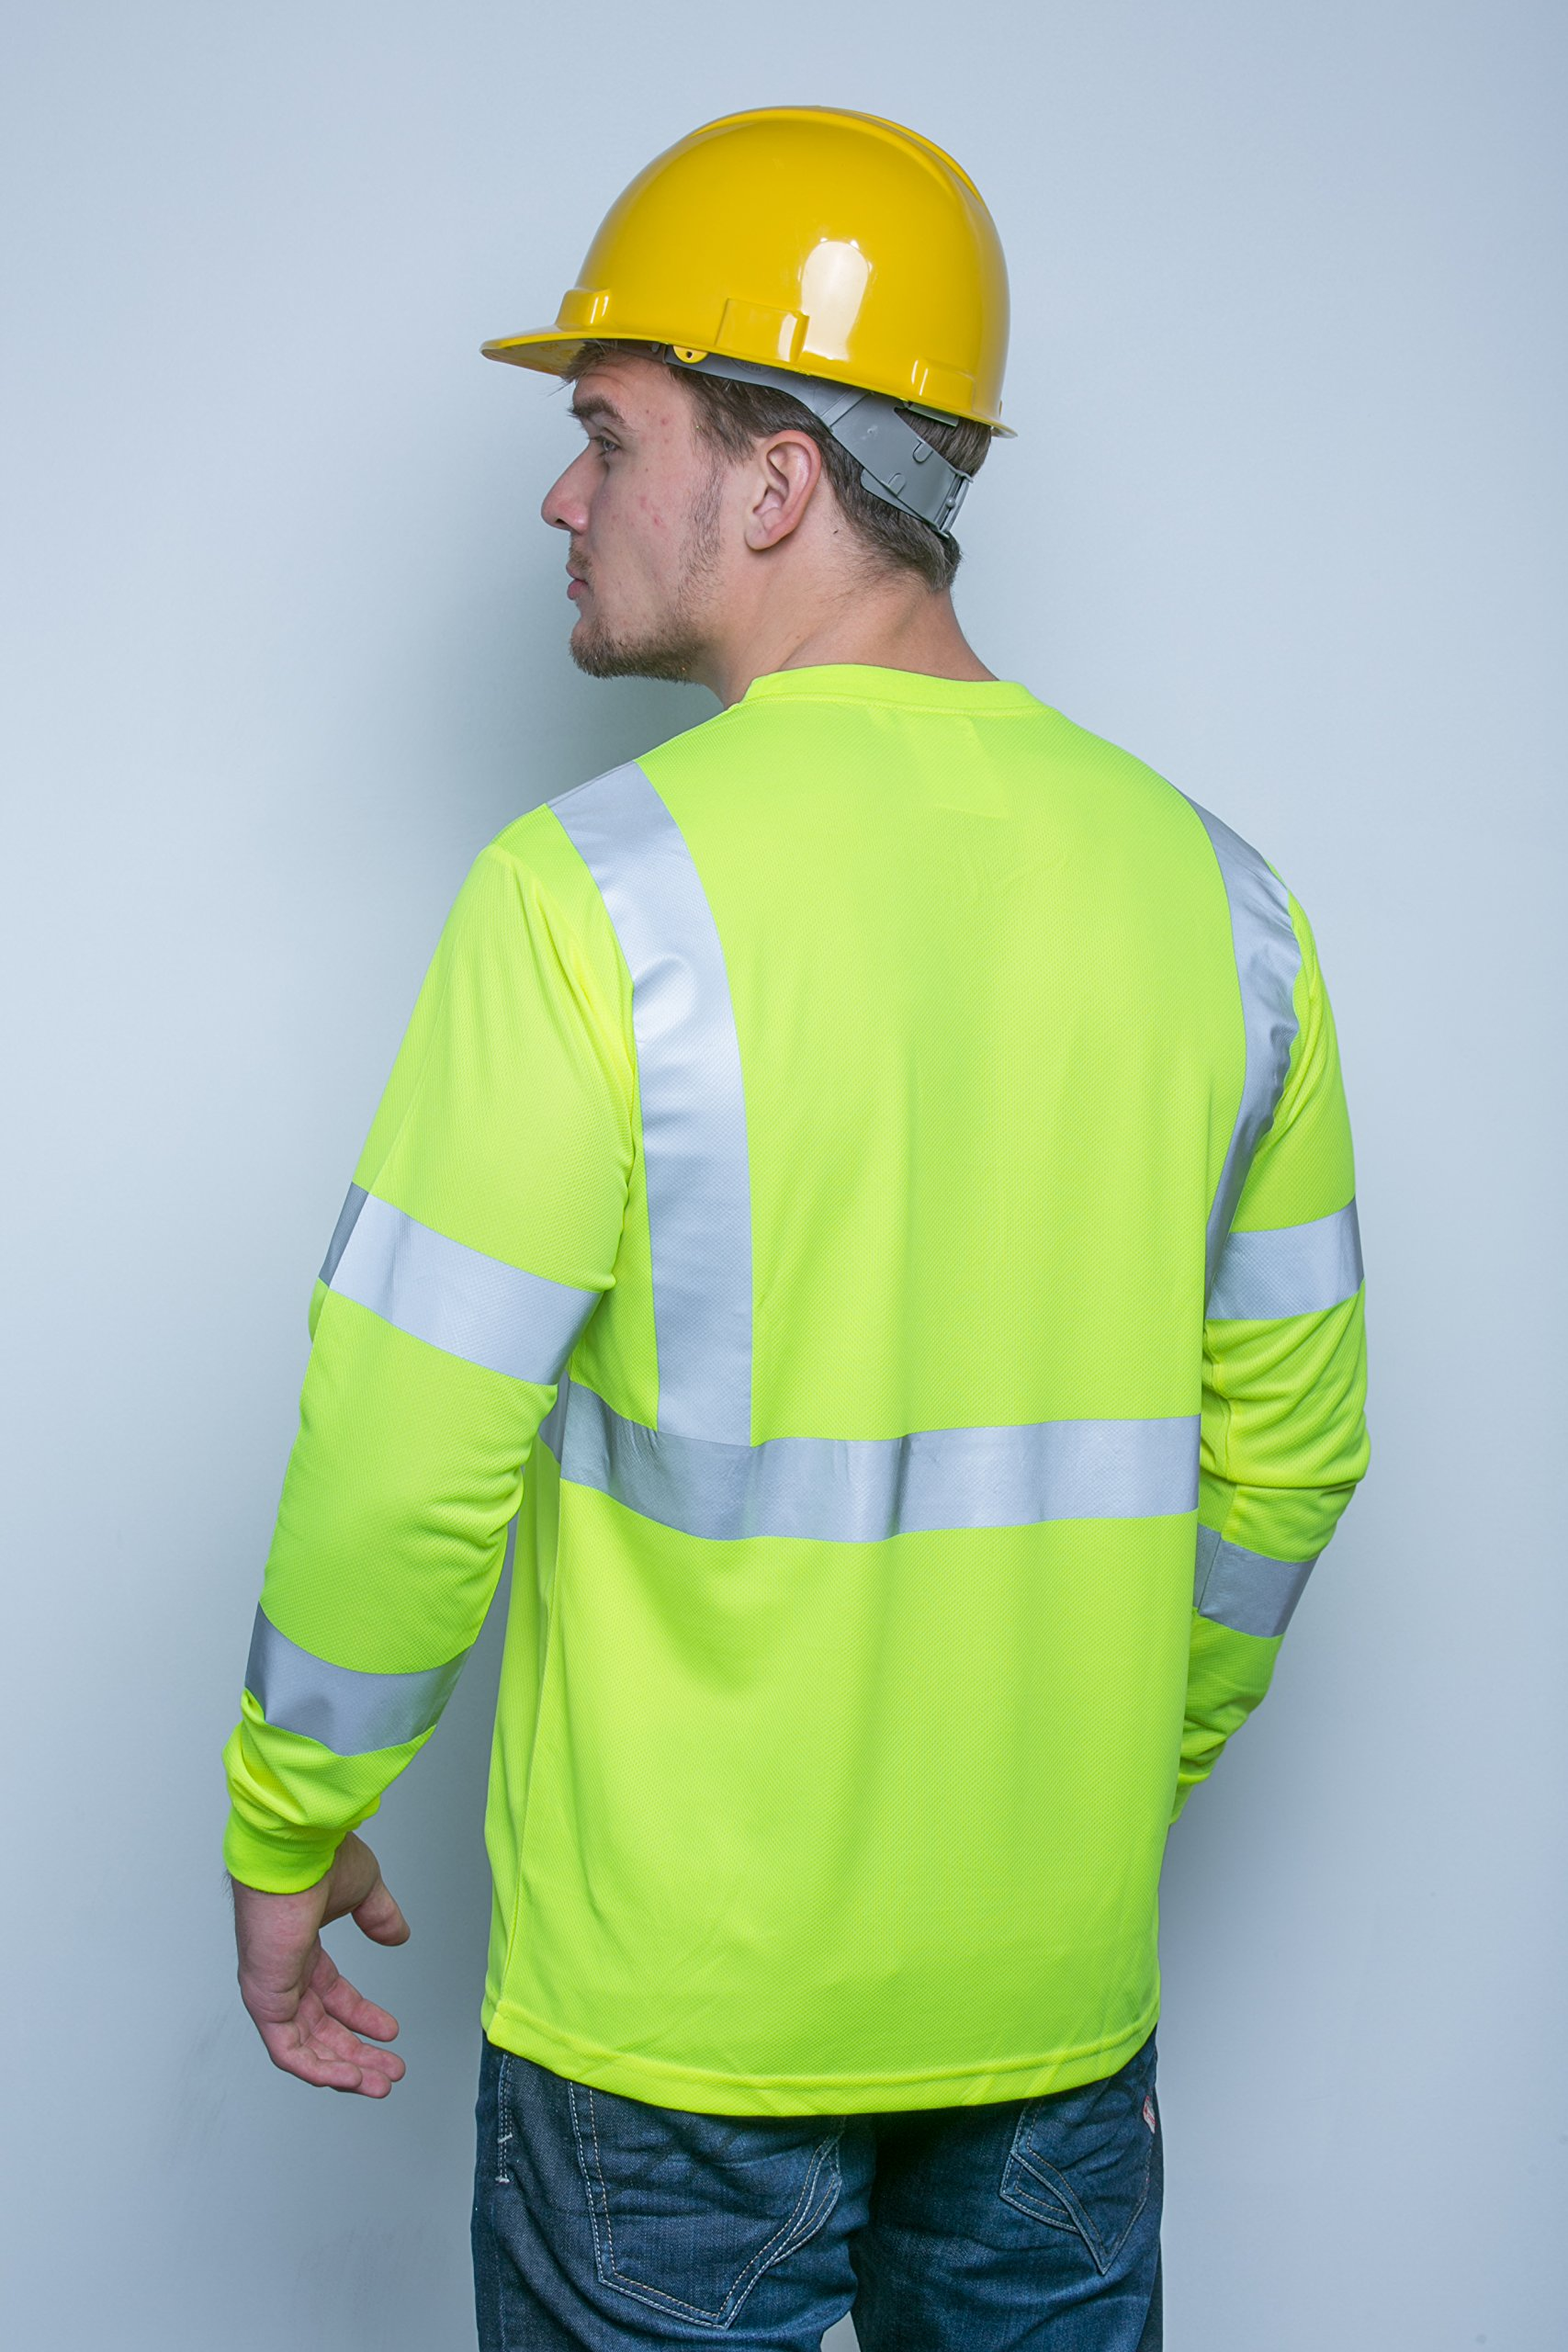 Brite Safety Style 210 Hi Vis Shirt | Long-Sleeve Safety Shirts with Pockets | 3M Scotchlite Reflective Tape | ANSI Class 3 Compliant | Moisture Wicking Shirt for Men & Women (6XL)